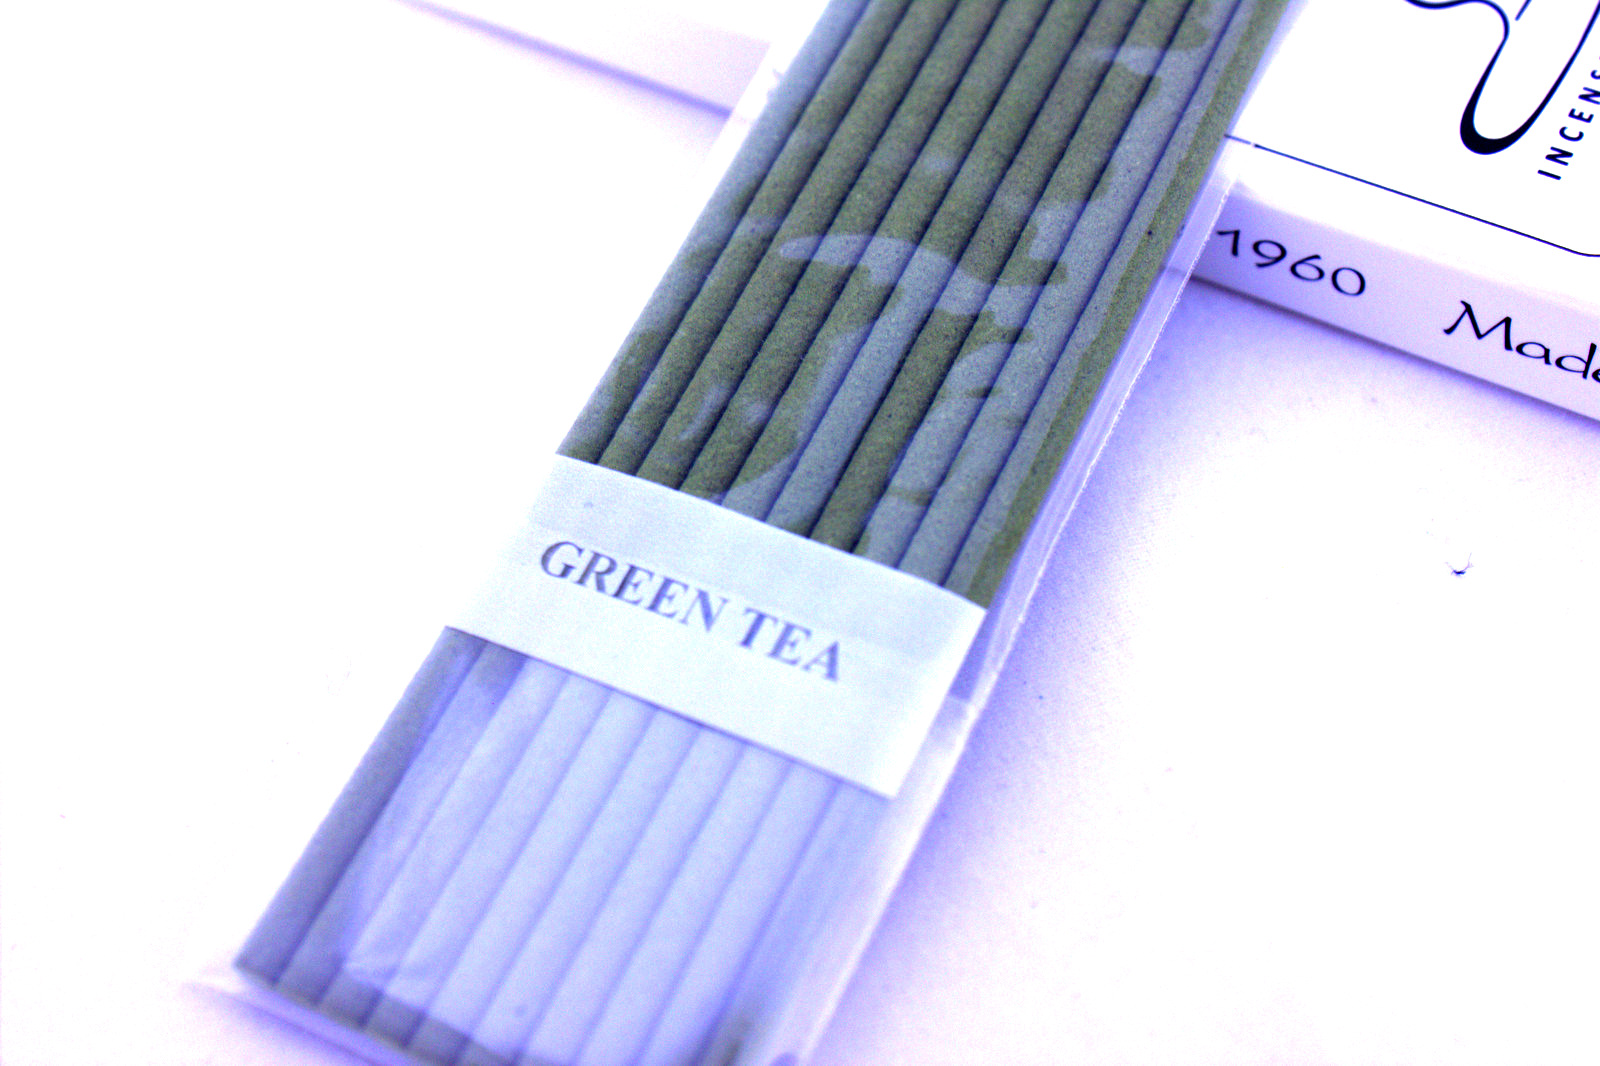 4.greentea.jpg_product